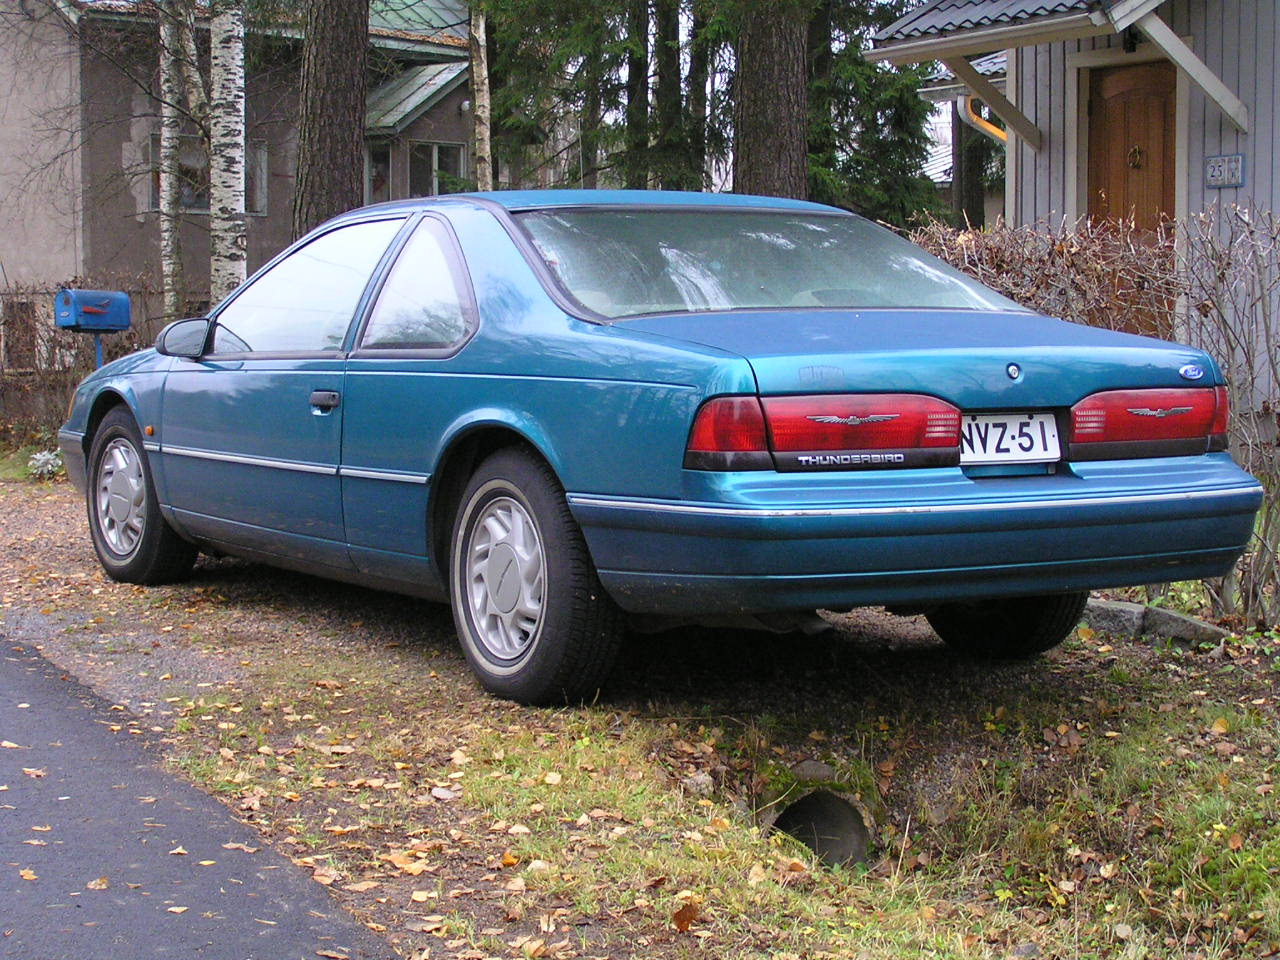 1992 Ford Thunderbird #21